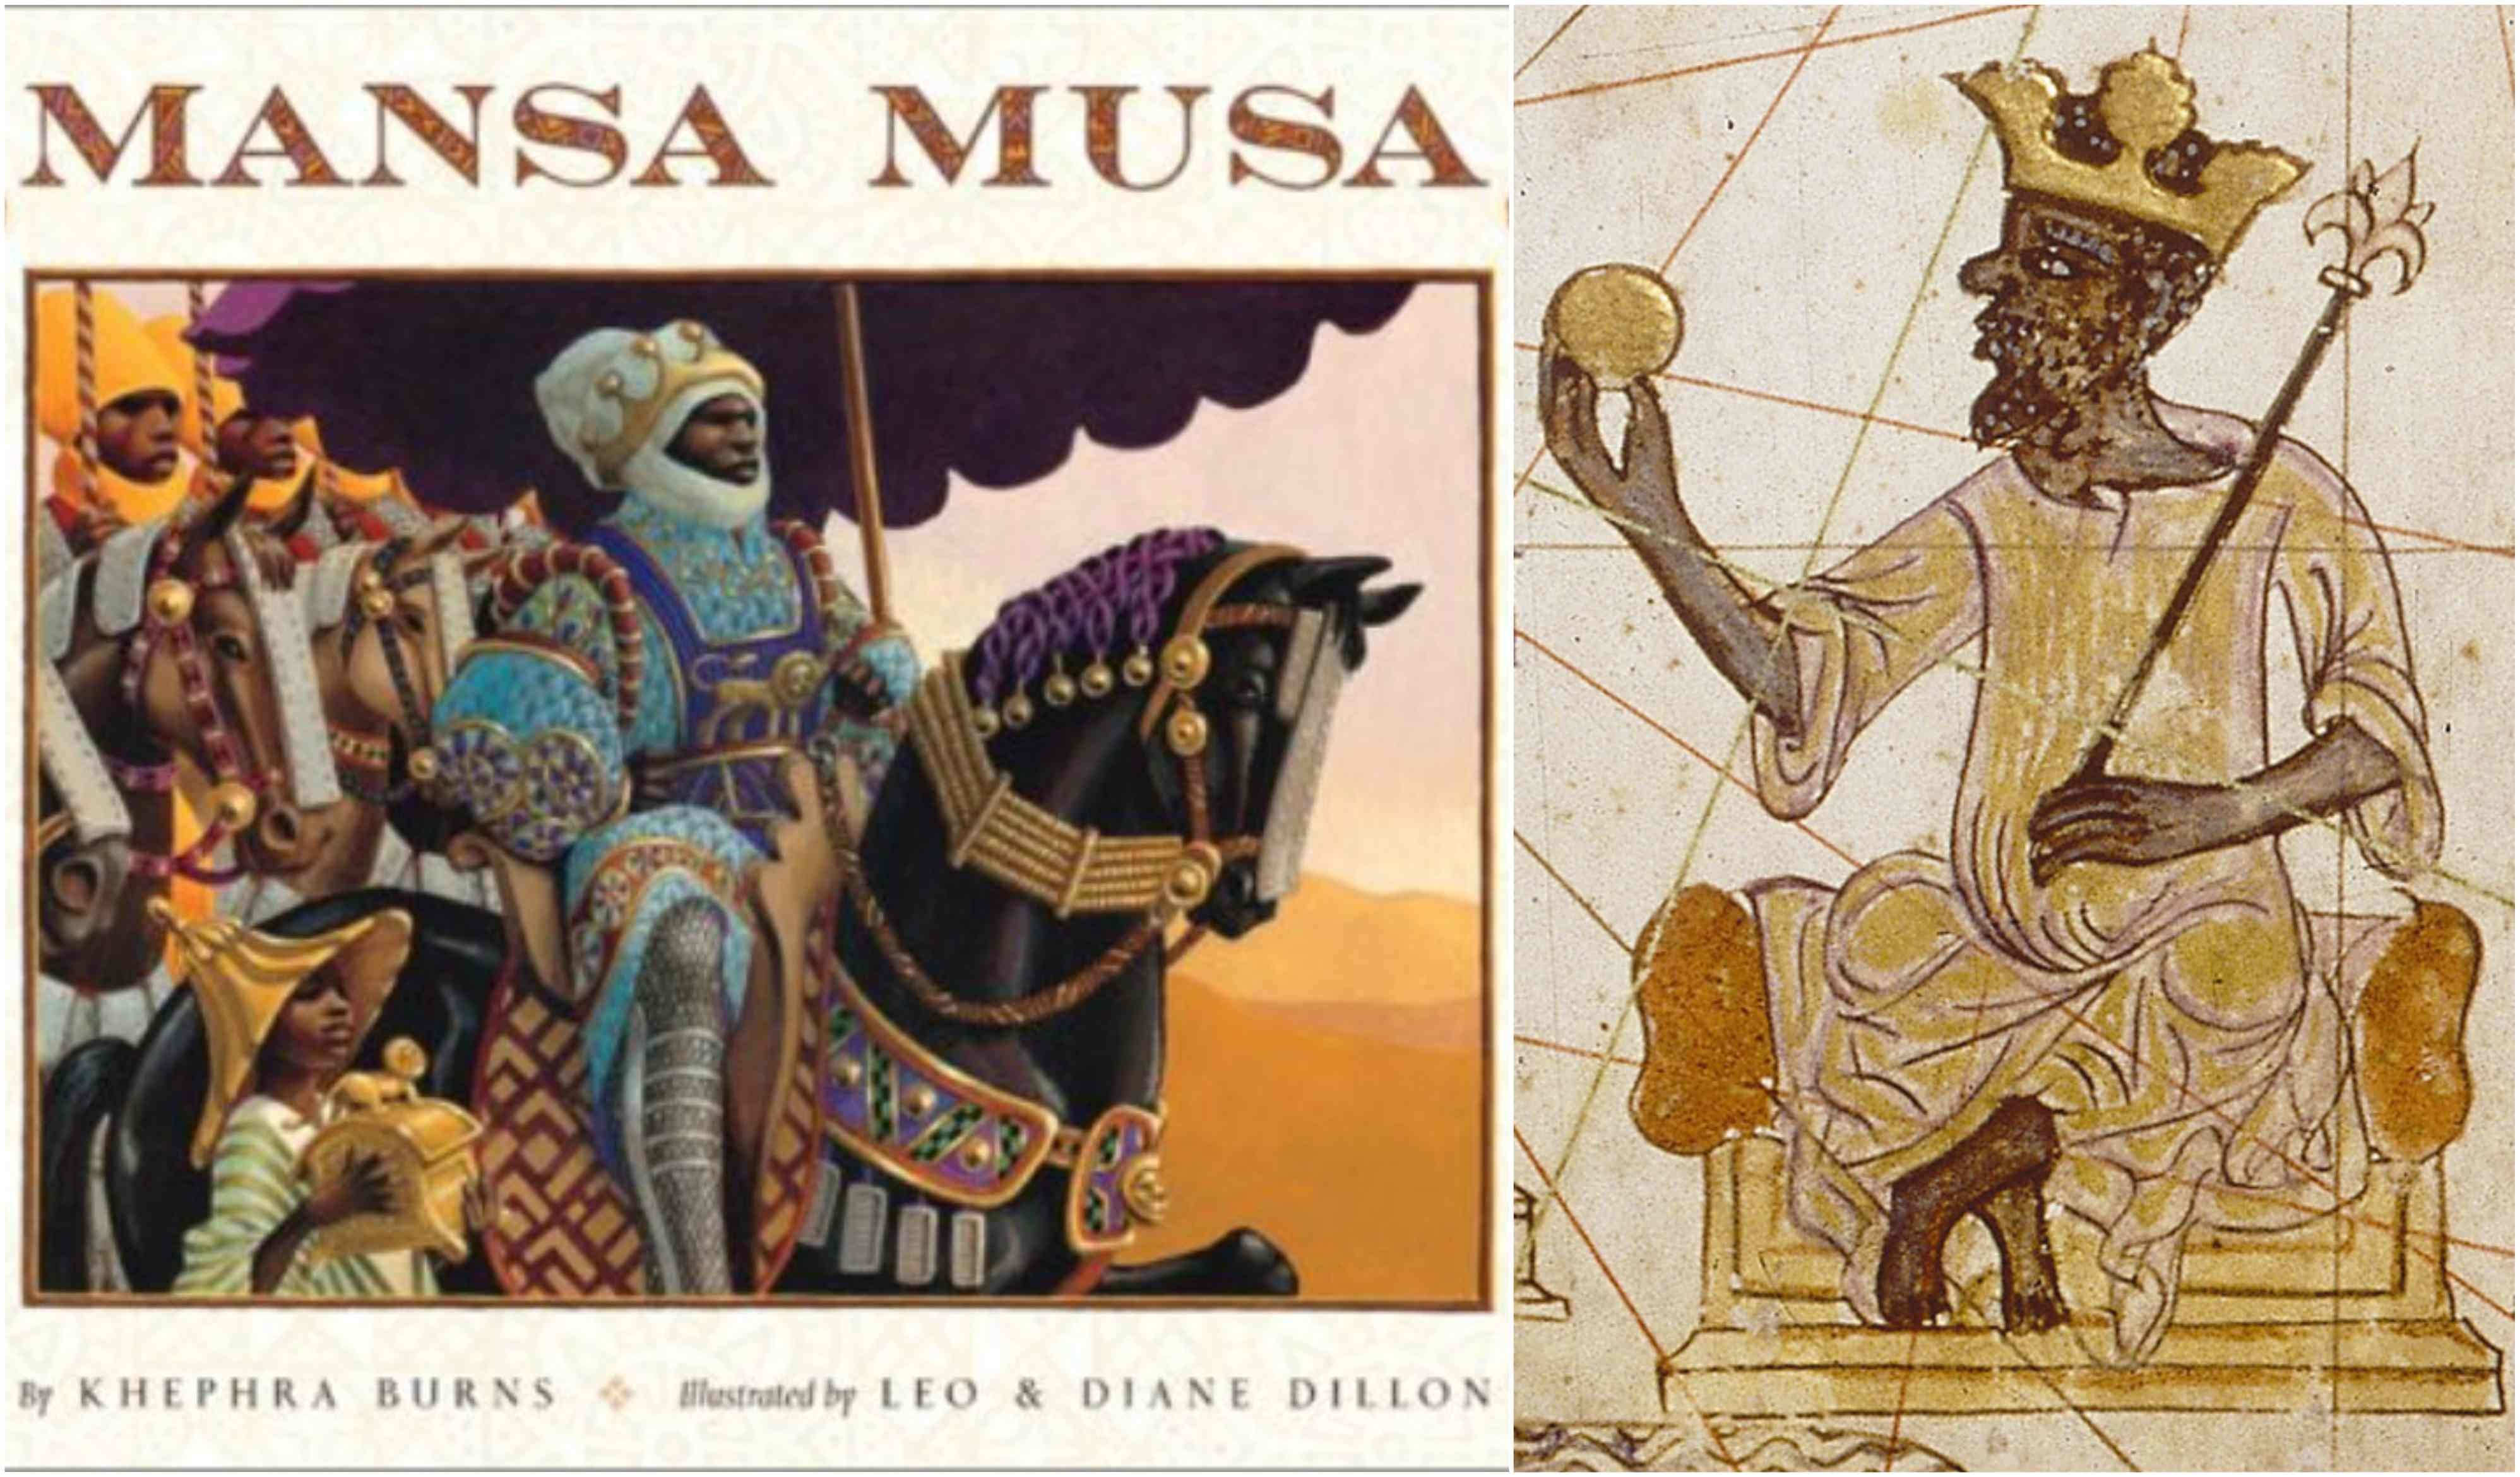 mansa musa essay 2015-12-10 mansa musa 1280-1337 ruler of mali mansa musa's birth date is not known he was probably the grandson of sundiata, the founder of his dynasty mali was a west african empire which became the largest and richest realm of africa under mansa musa.